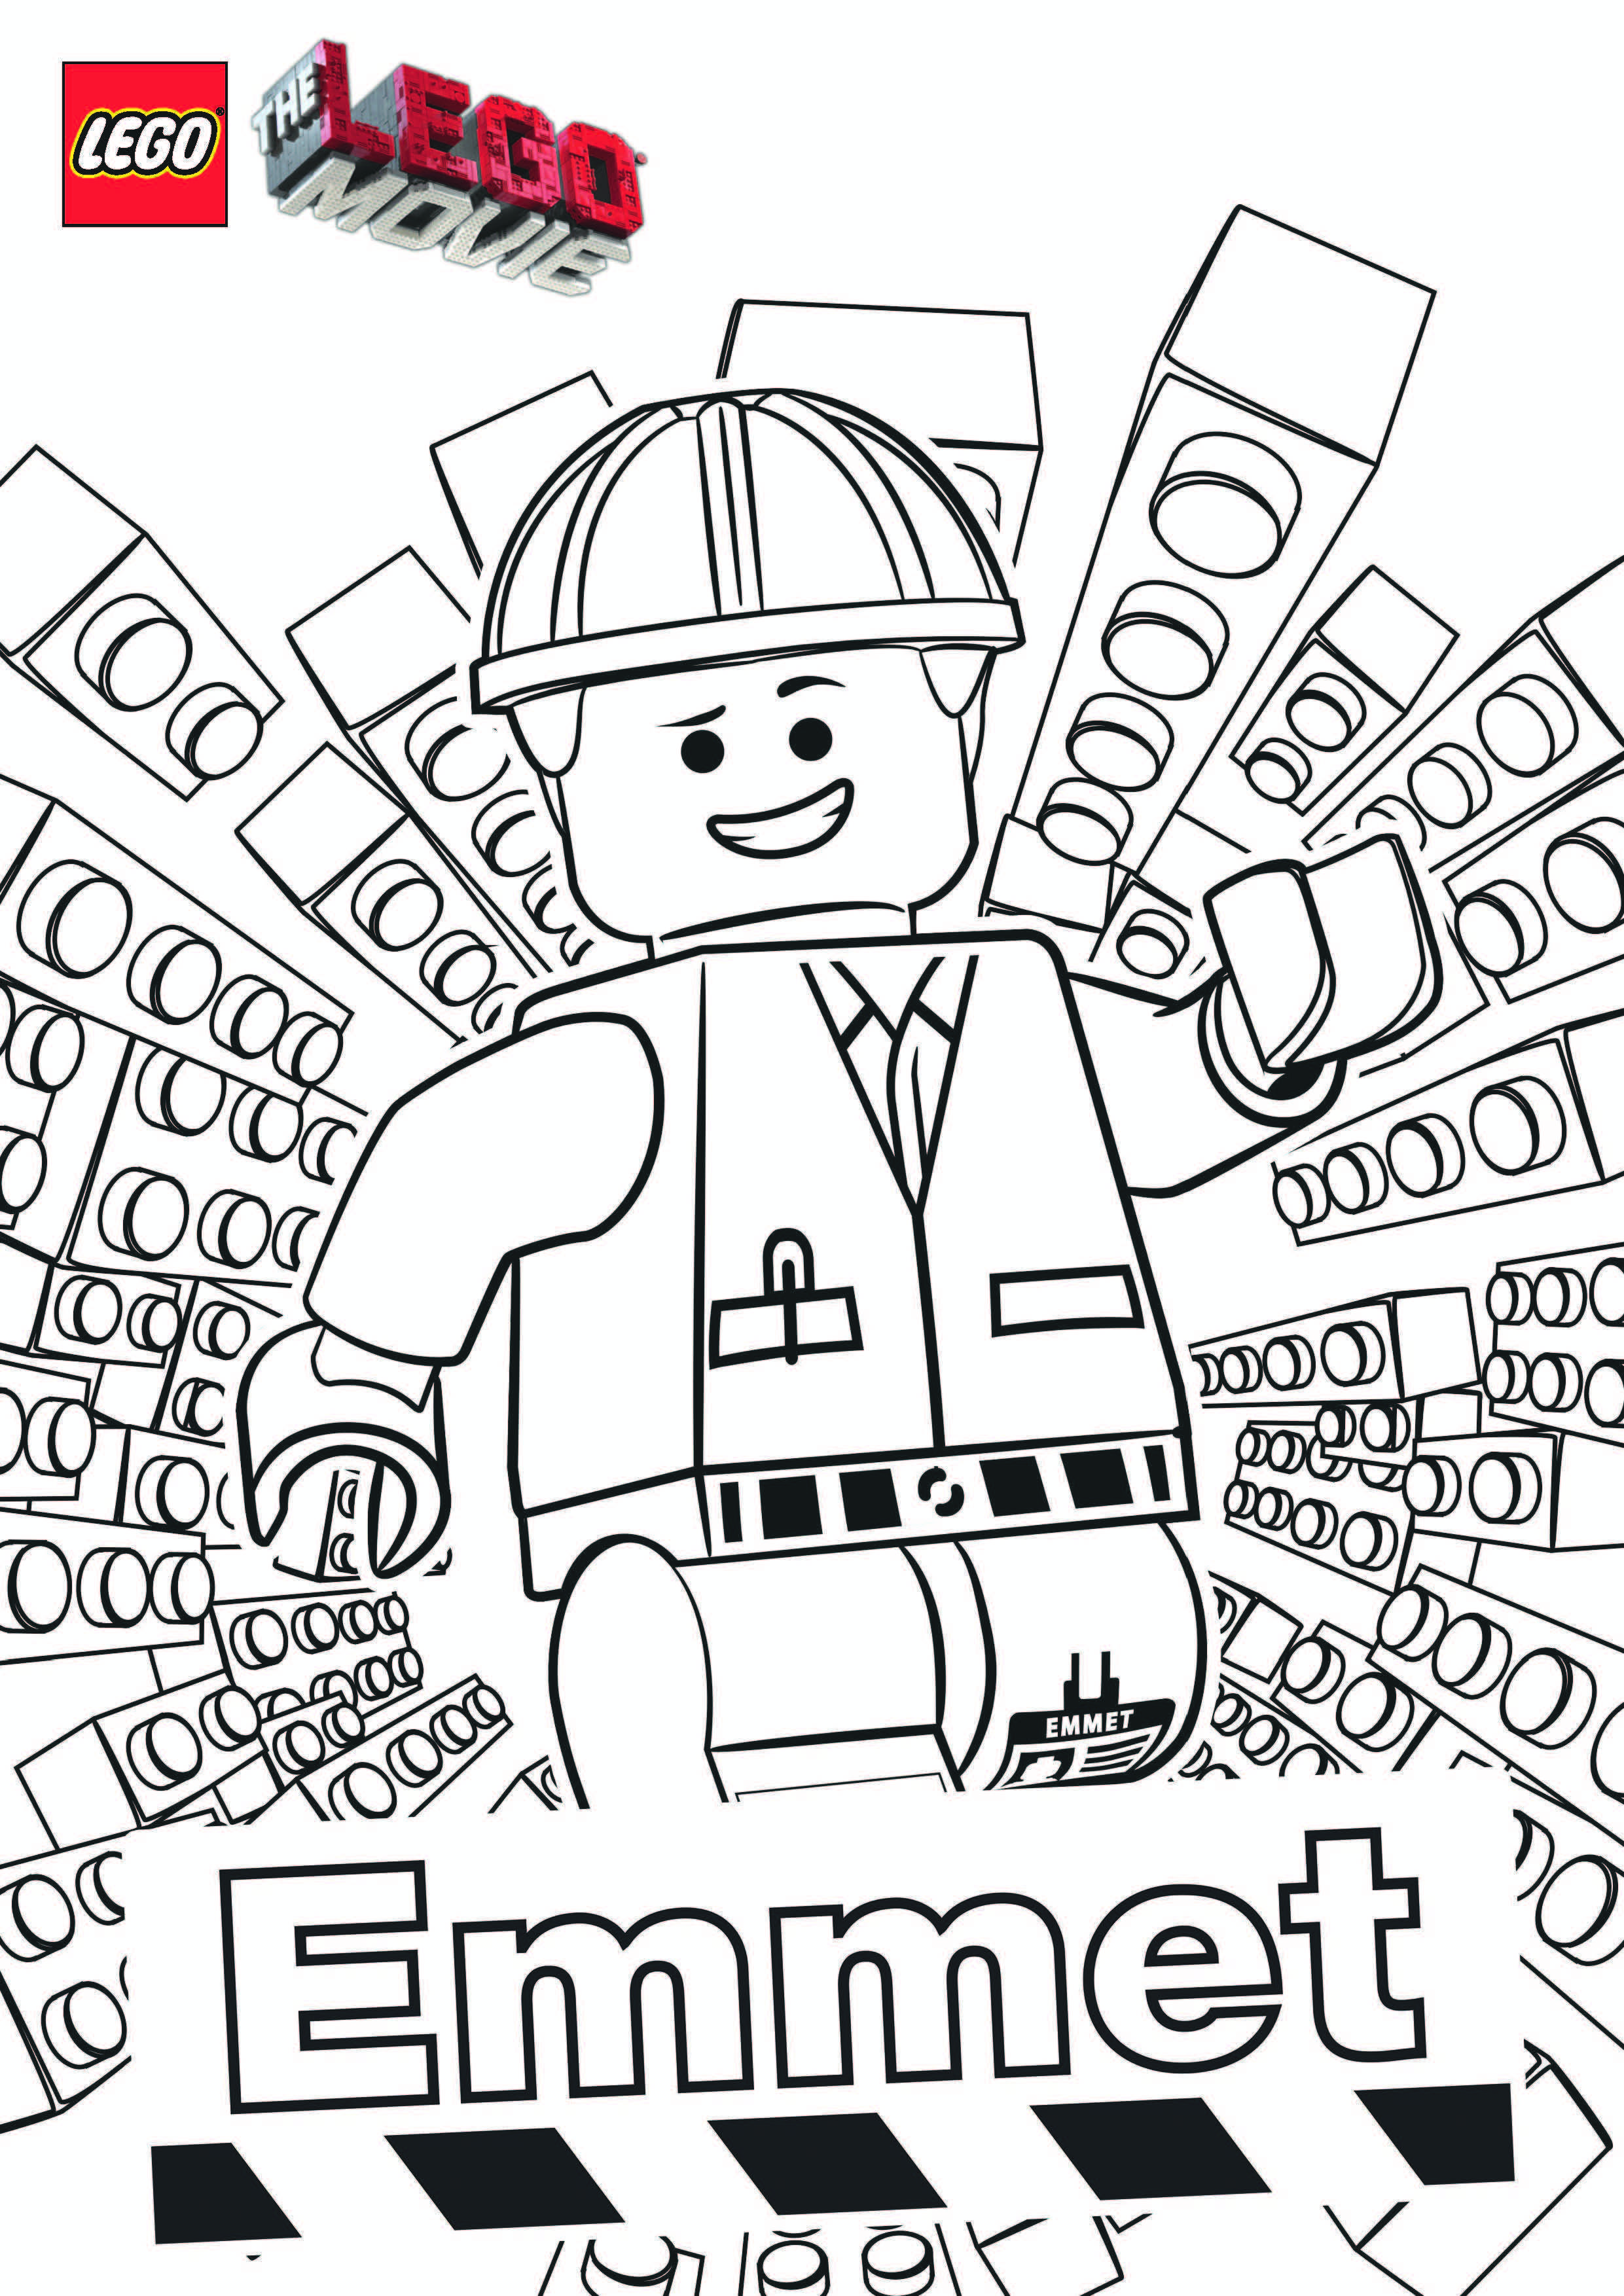 The Lego Movie - Emmet Coloring Page | Avery | Pinterest